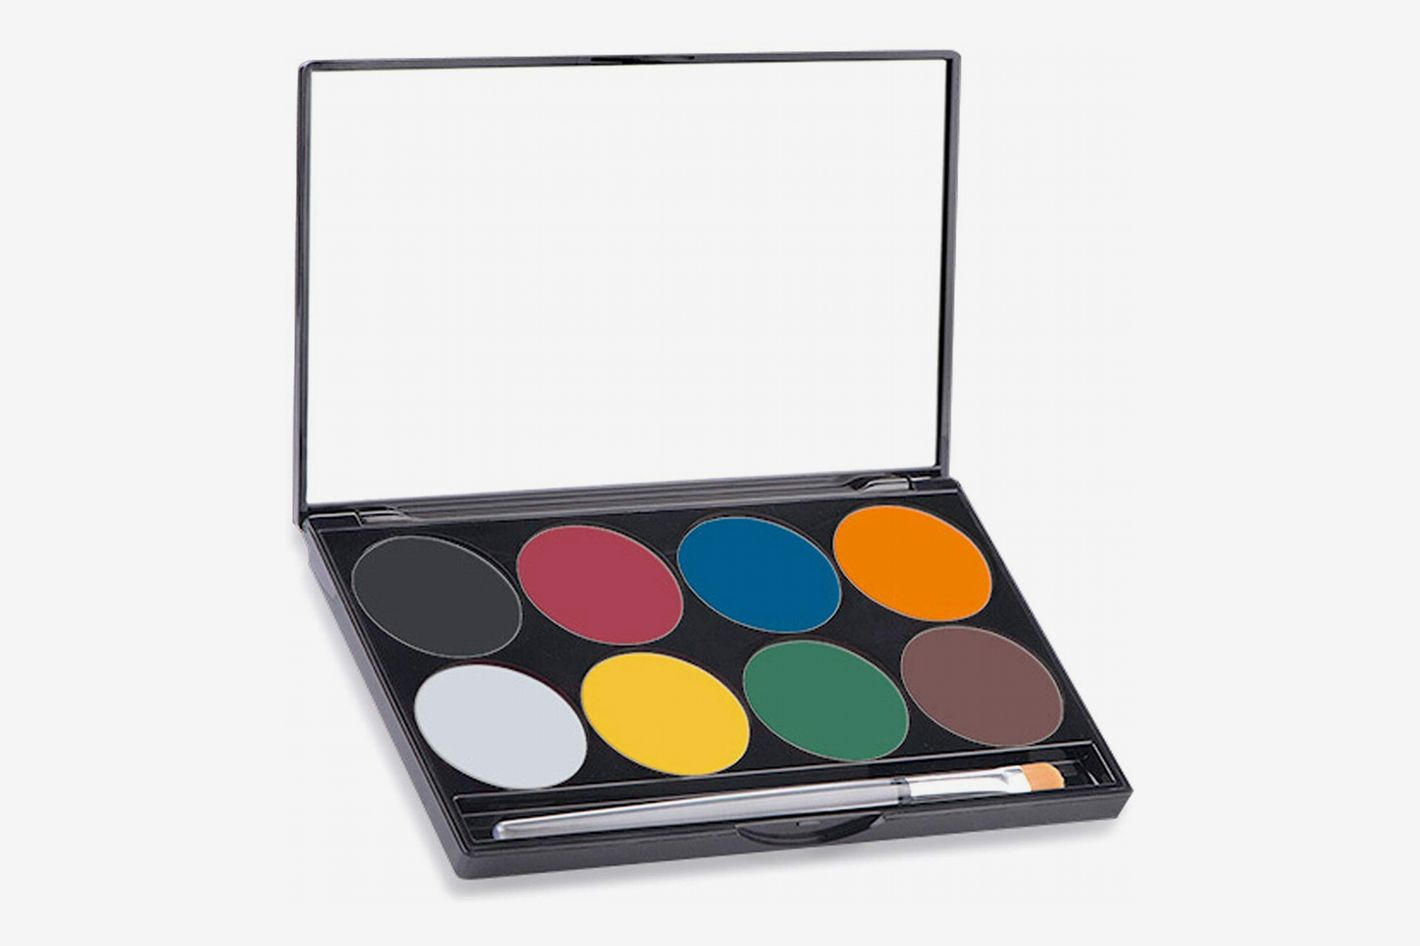 mehron makeup paradise aq face body paint 8 color palette